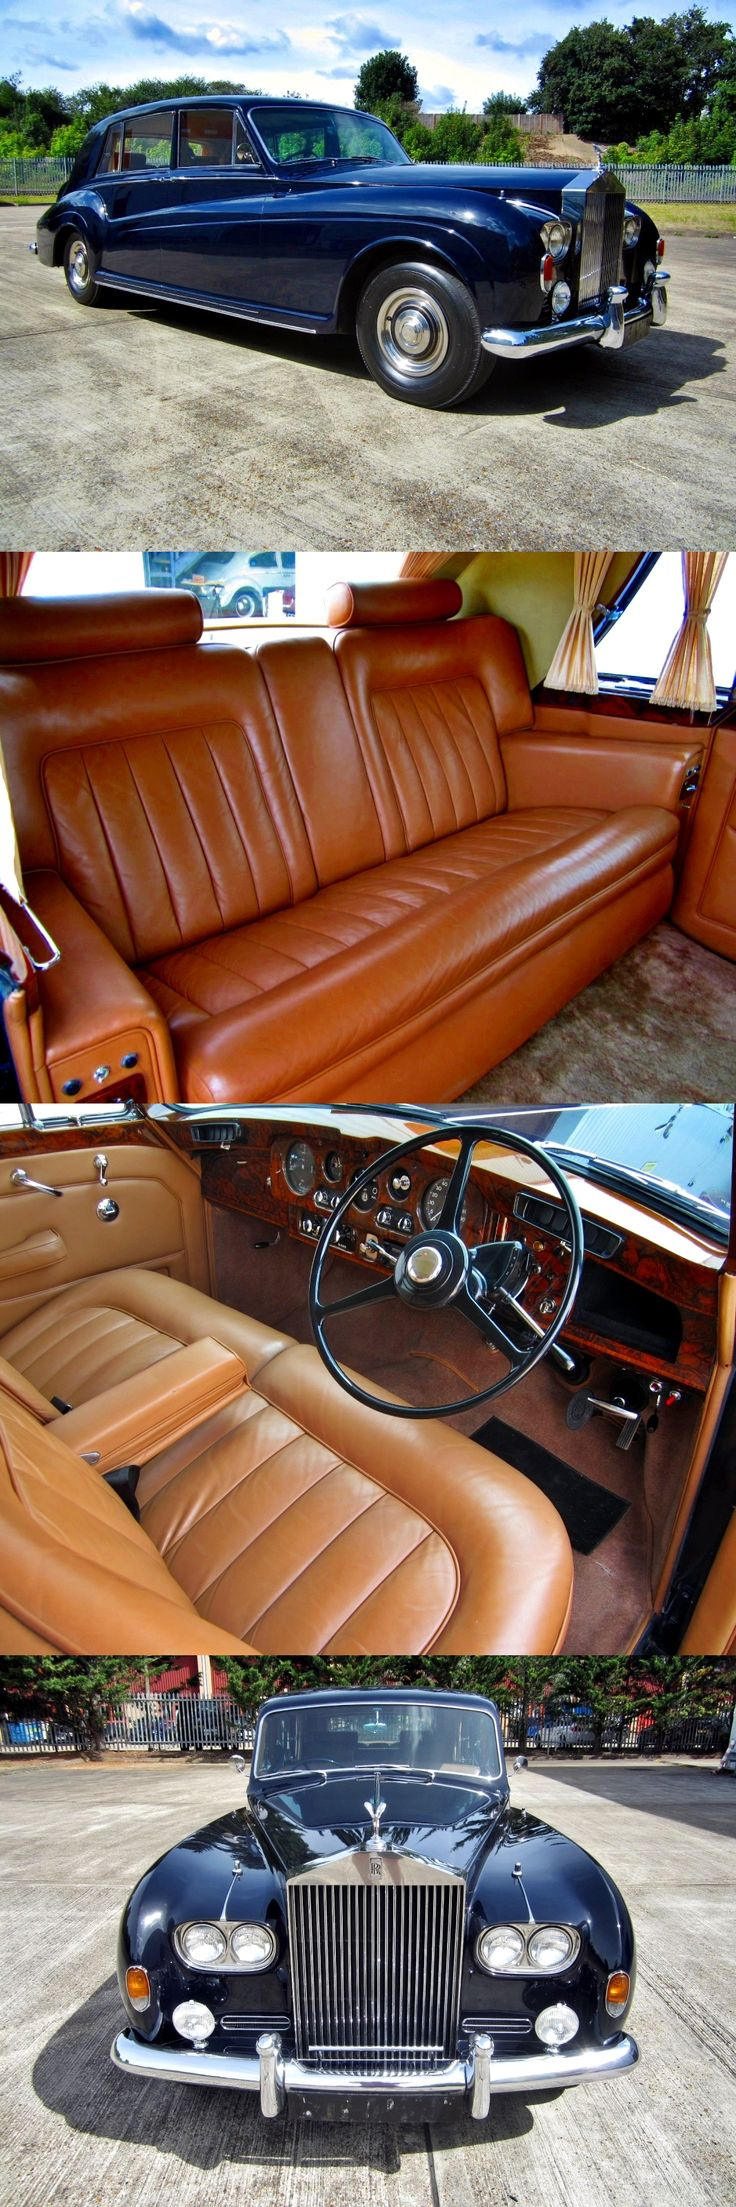 1967 Rolls-Royce Phantom V James Young PV16 design. Más...Re-pin Brought to you by agents at #HouseofInsurance in #EugeneOregon for #LowCostInsurance.